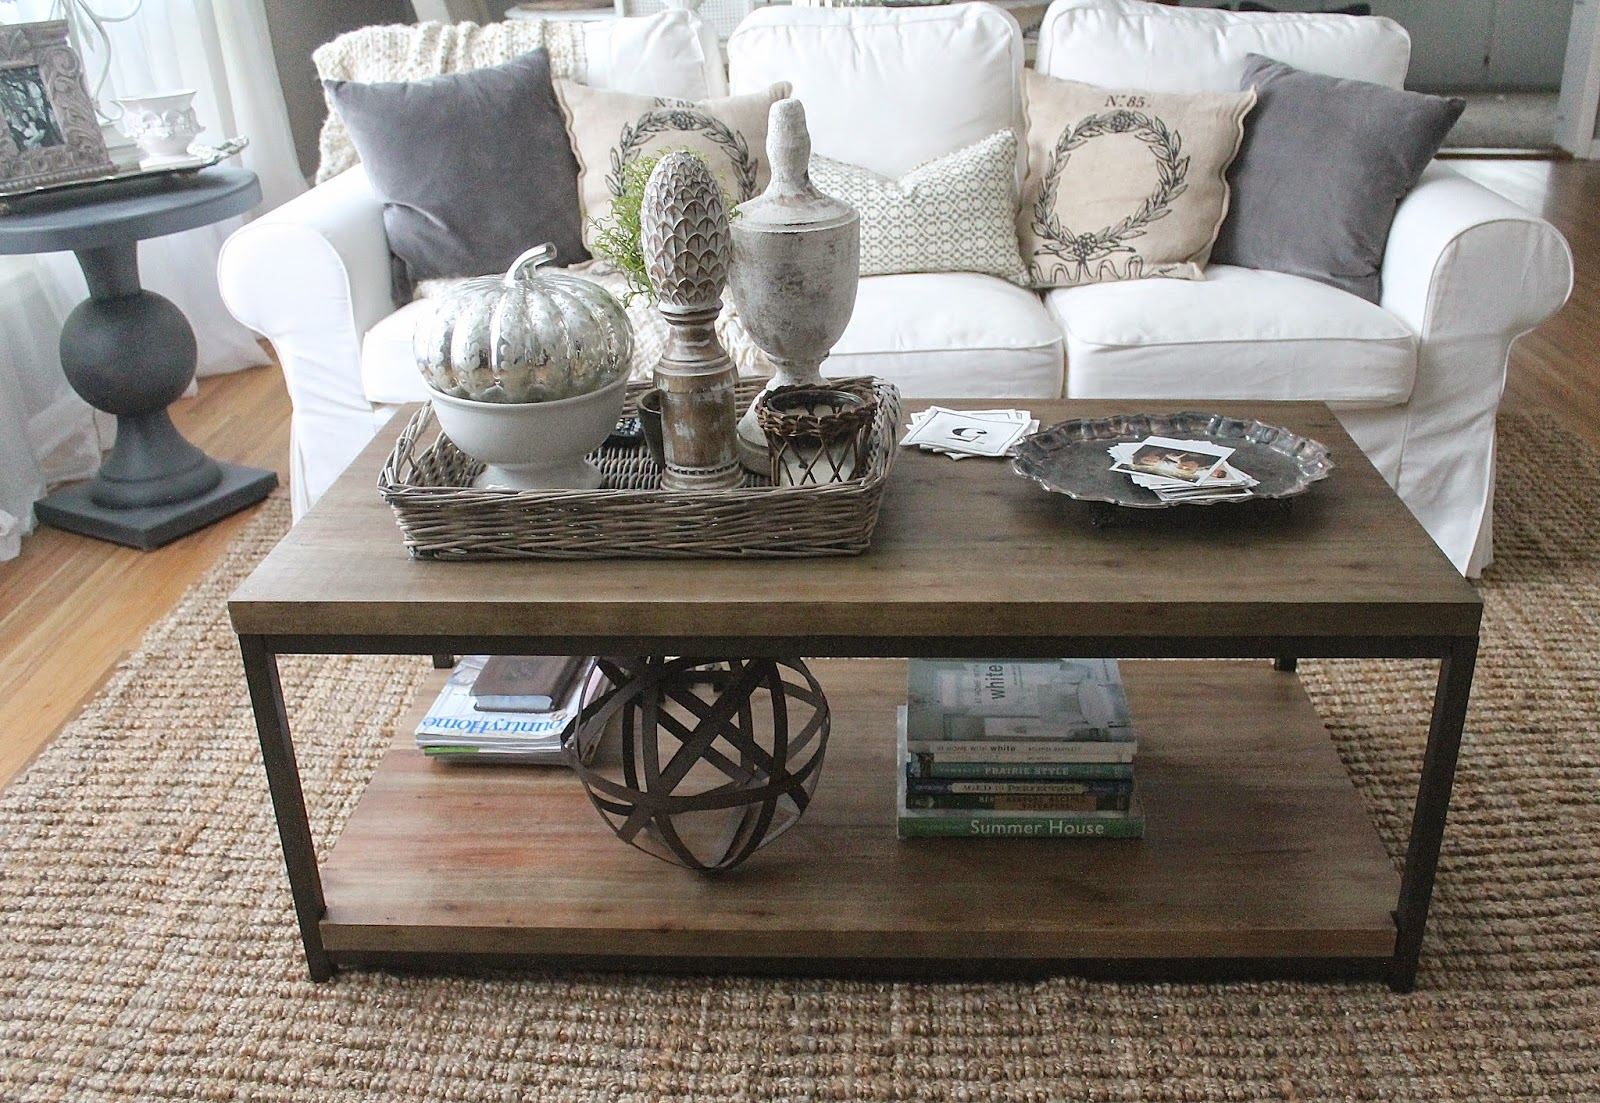 Groovy 29 Tips For A Perfect Coffee Table Styling Belivindesign Alphanode Cool Chair Designs And Ideas Alphanodeonline